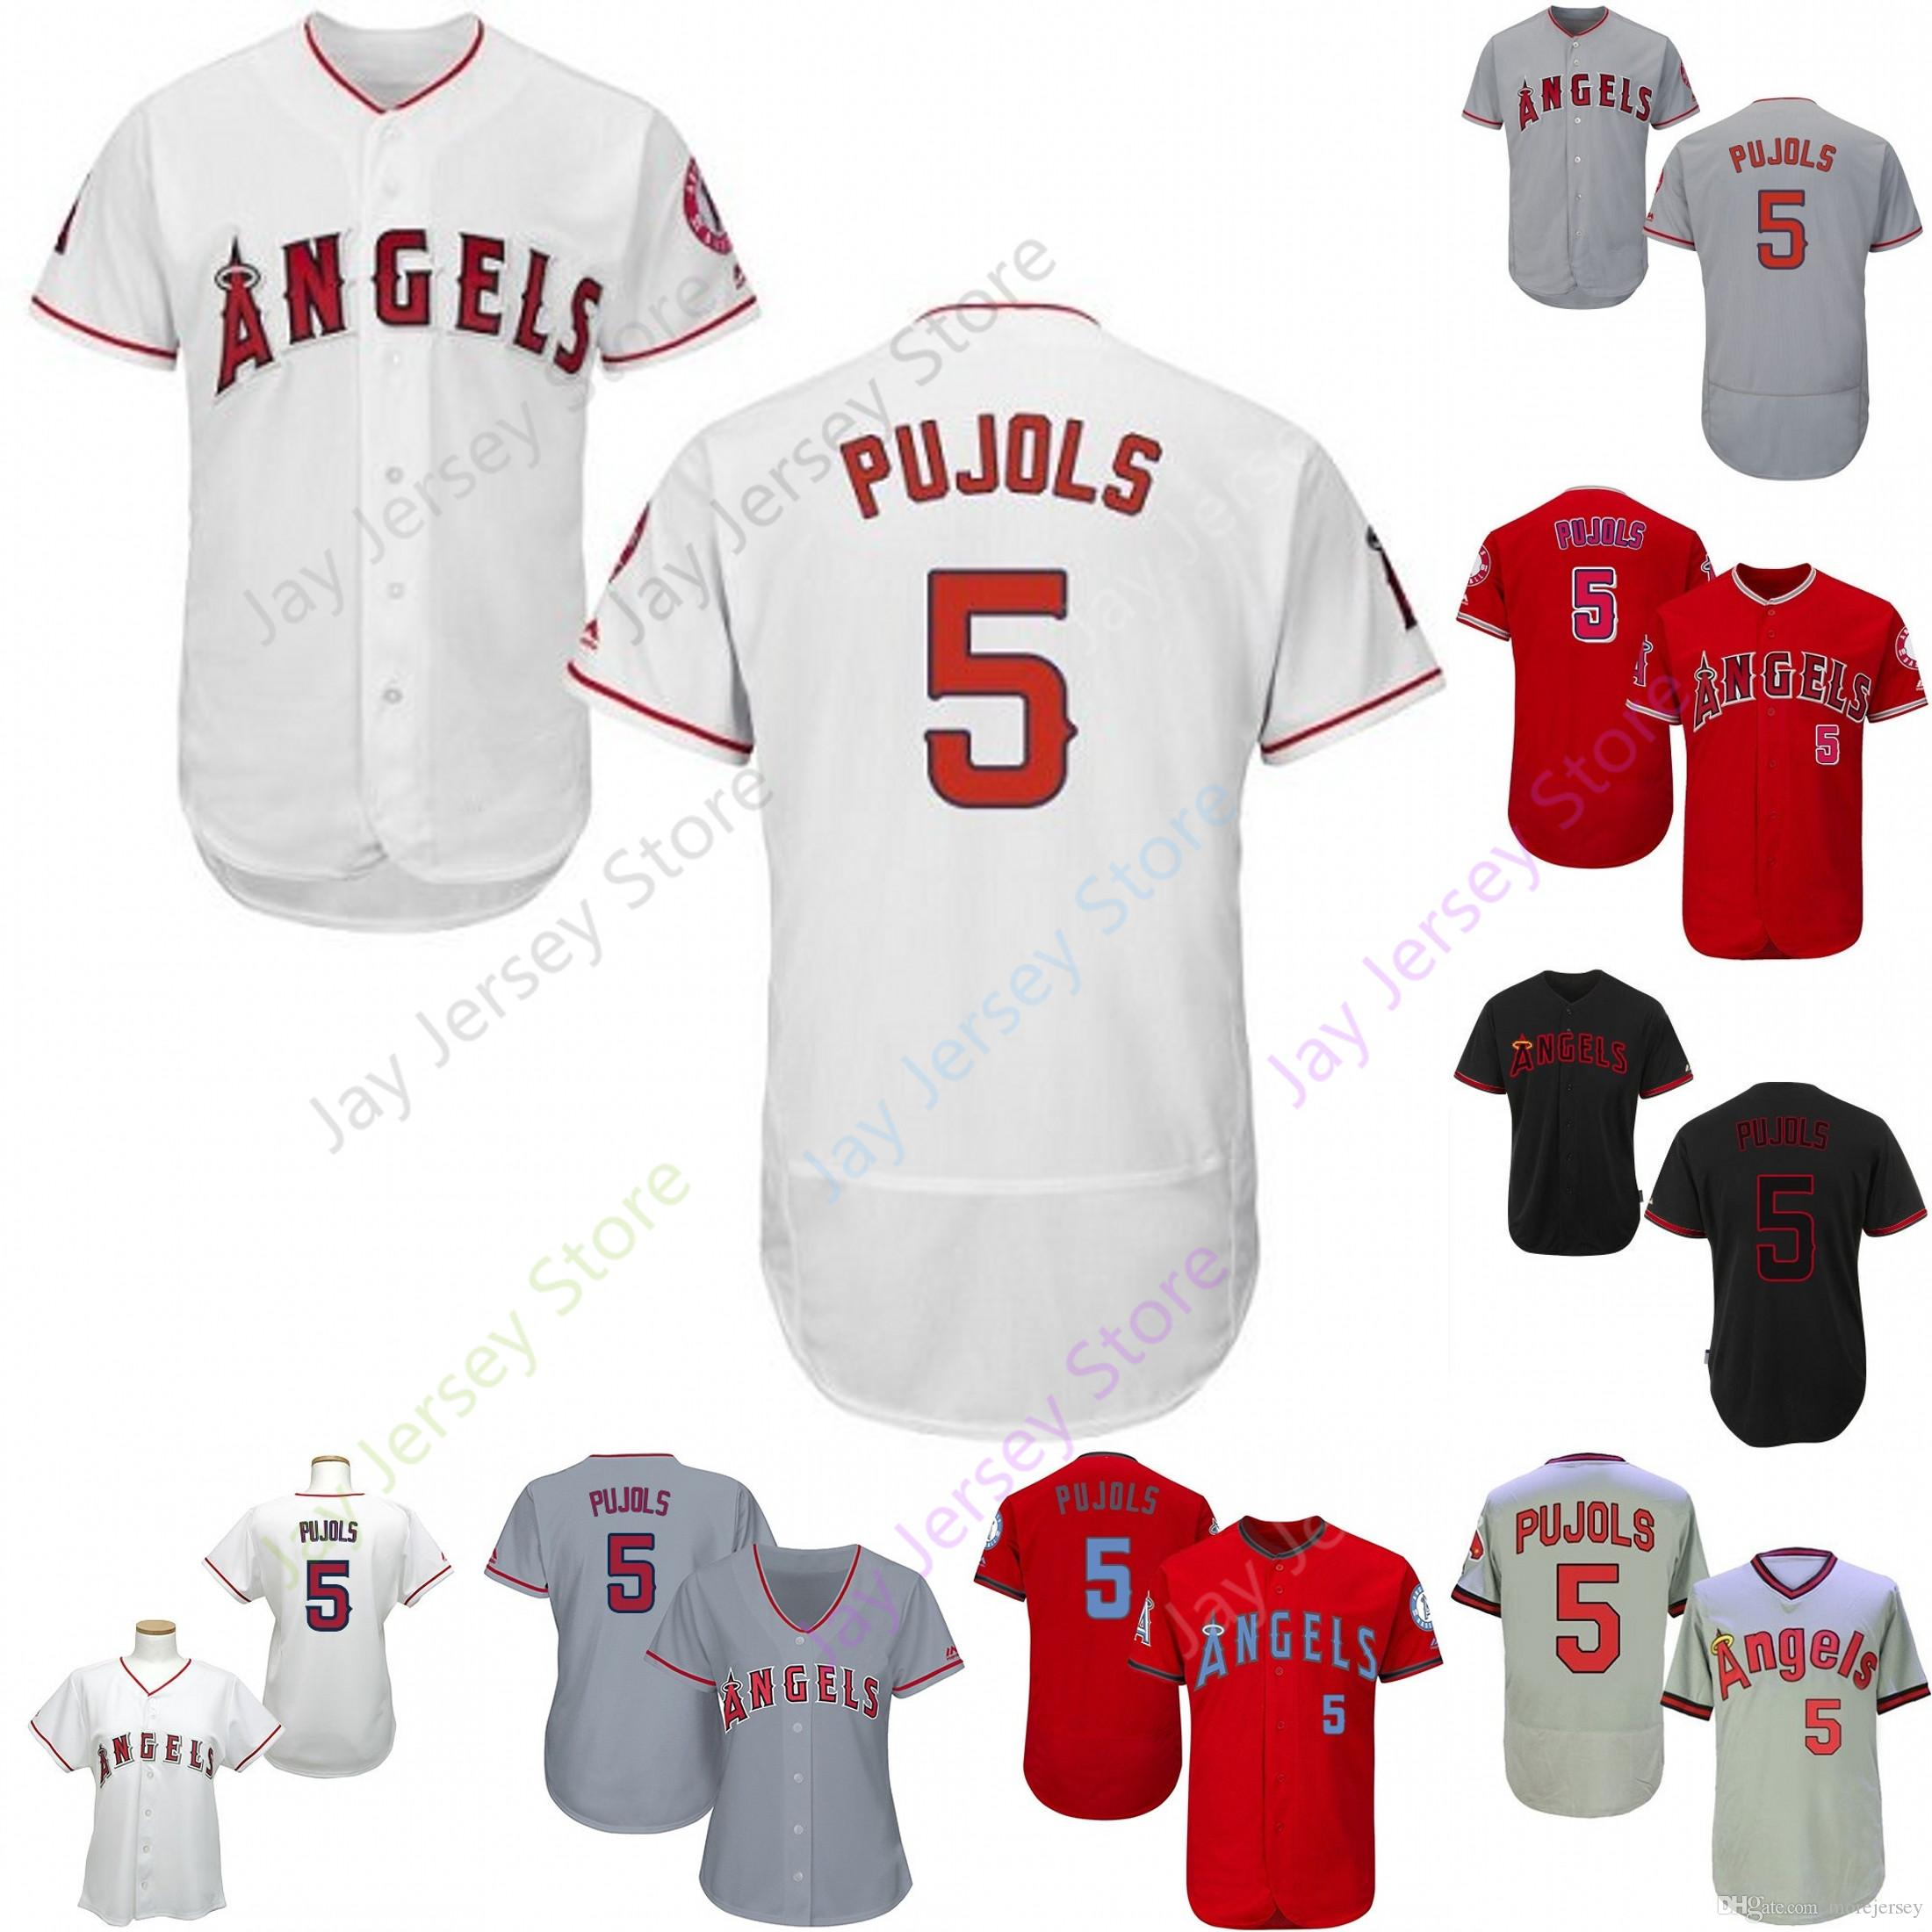 outlet store 8620e ceee1 2019 Los Angeles 5 Albert Pujols Jersey Angels of Anaheim Jerseys CoolBase  Flexbase Home Away White Black Red Grey Pullover Button Men Women